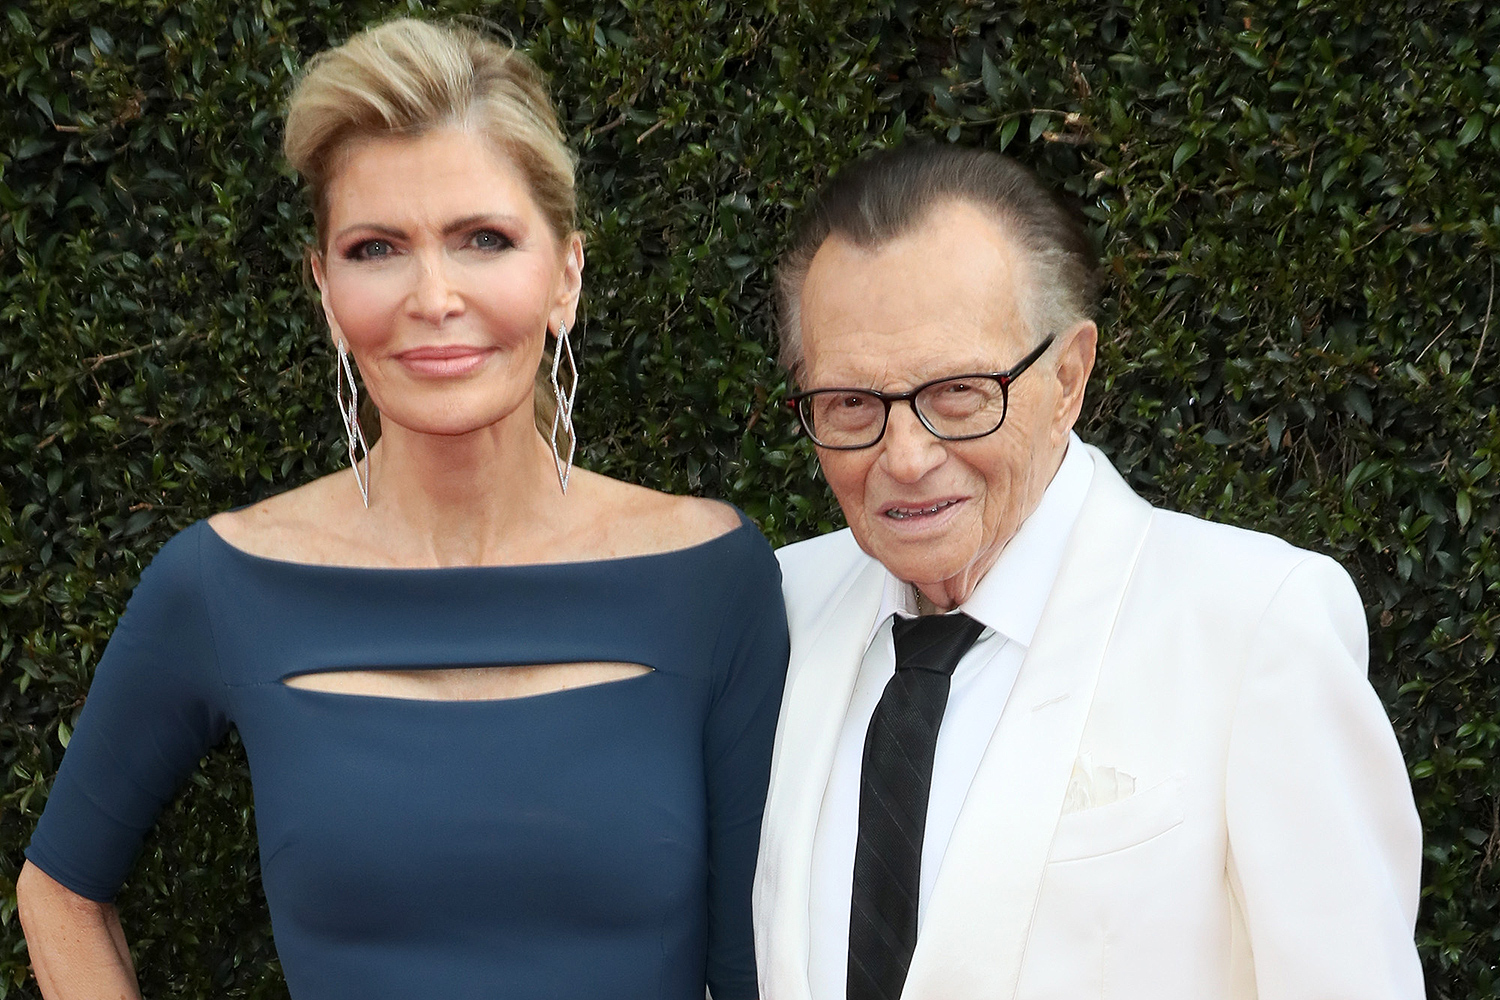 Larry King's Estranged Wife Shawn Asks to Be Executor of His Estate amid Legal Battle over Will